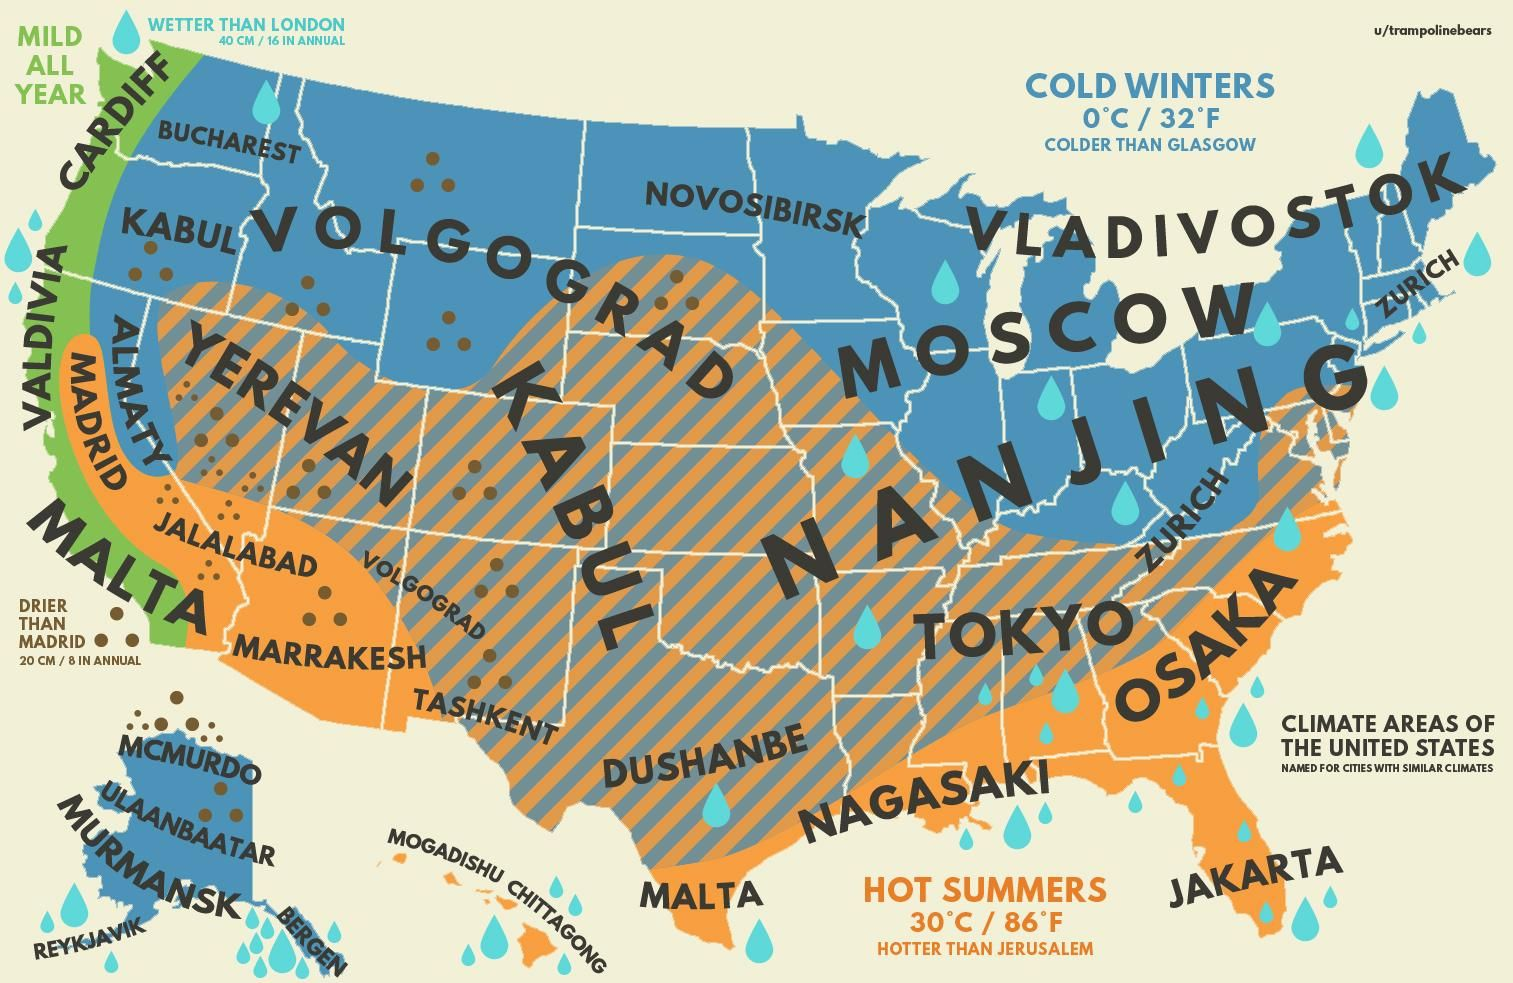 Comparative climate map of US